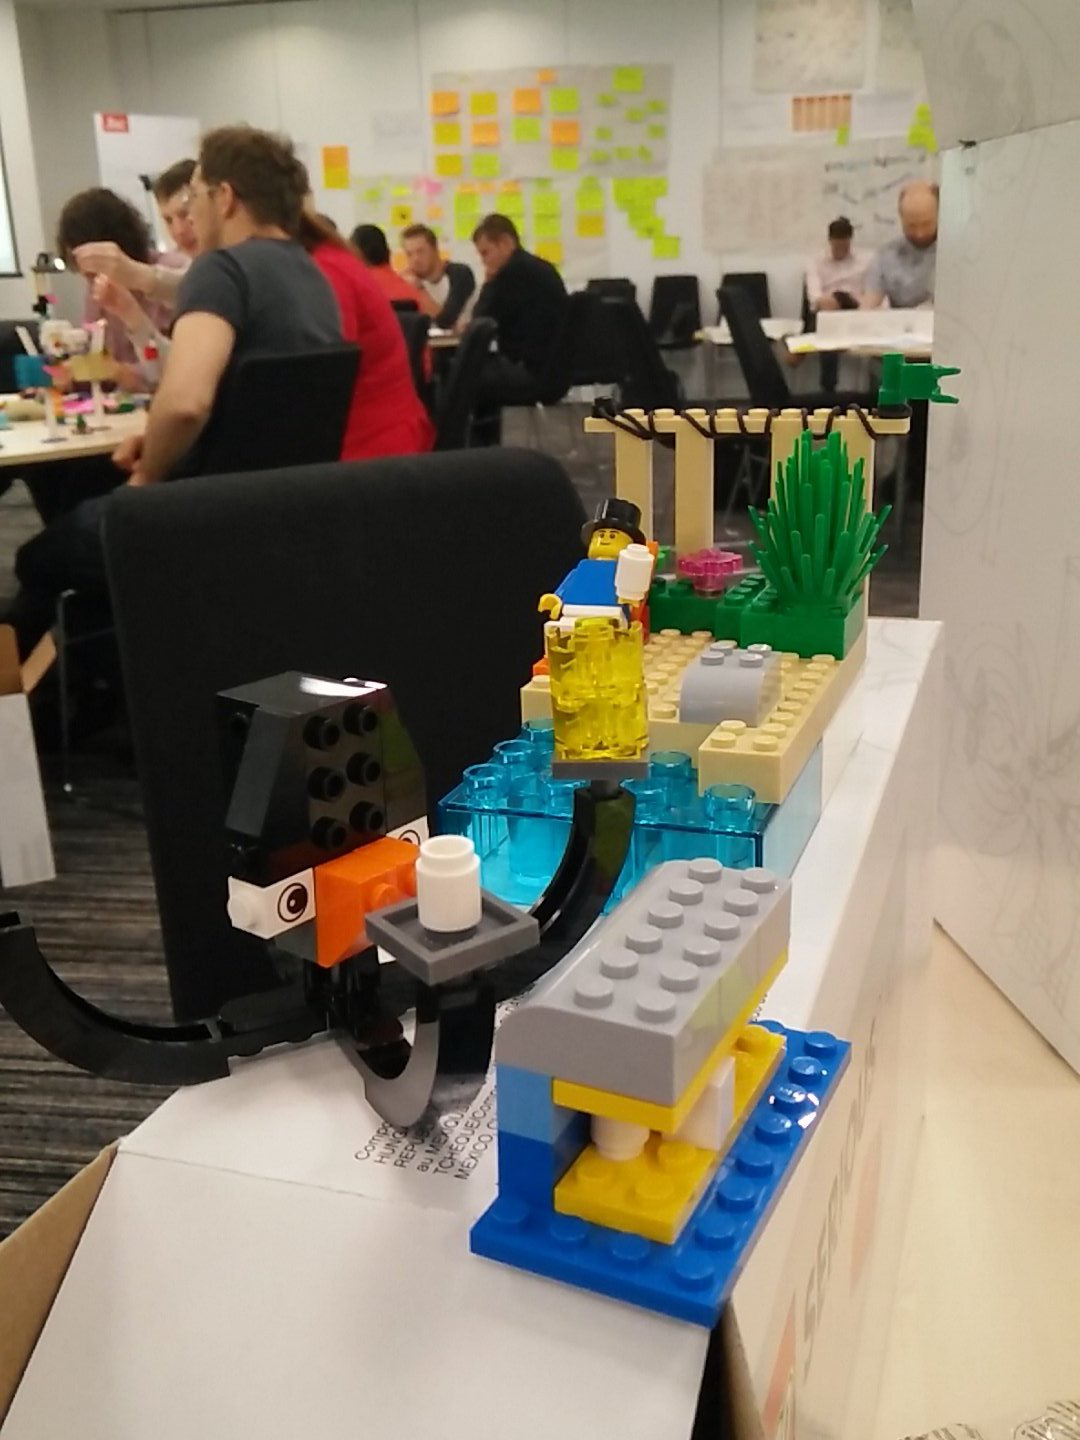 Super productive morning building the customer and us. The multi-capable octopus. #studentideas https://t.co/ByLU8Yisg7